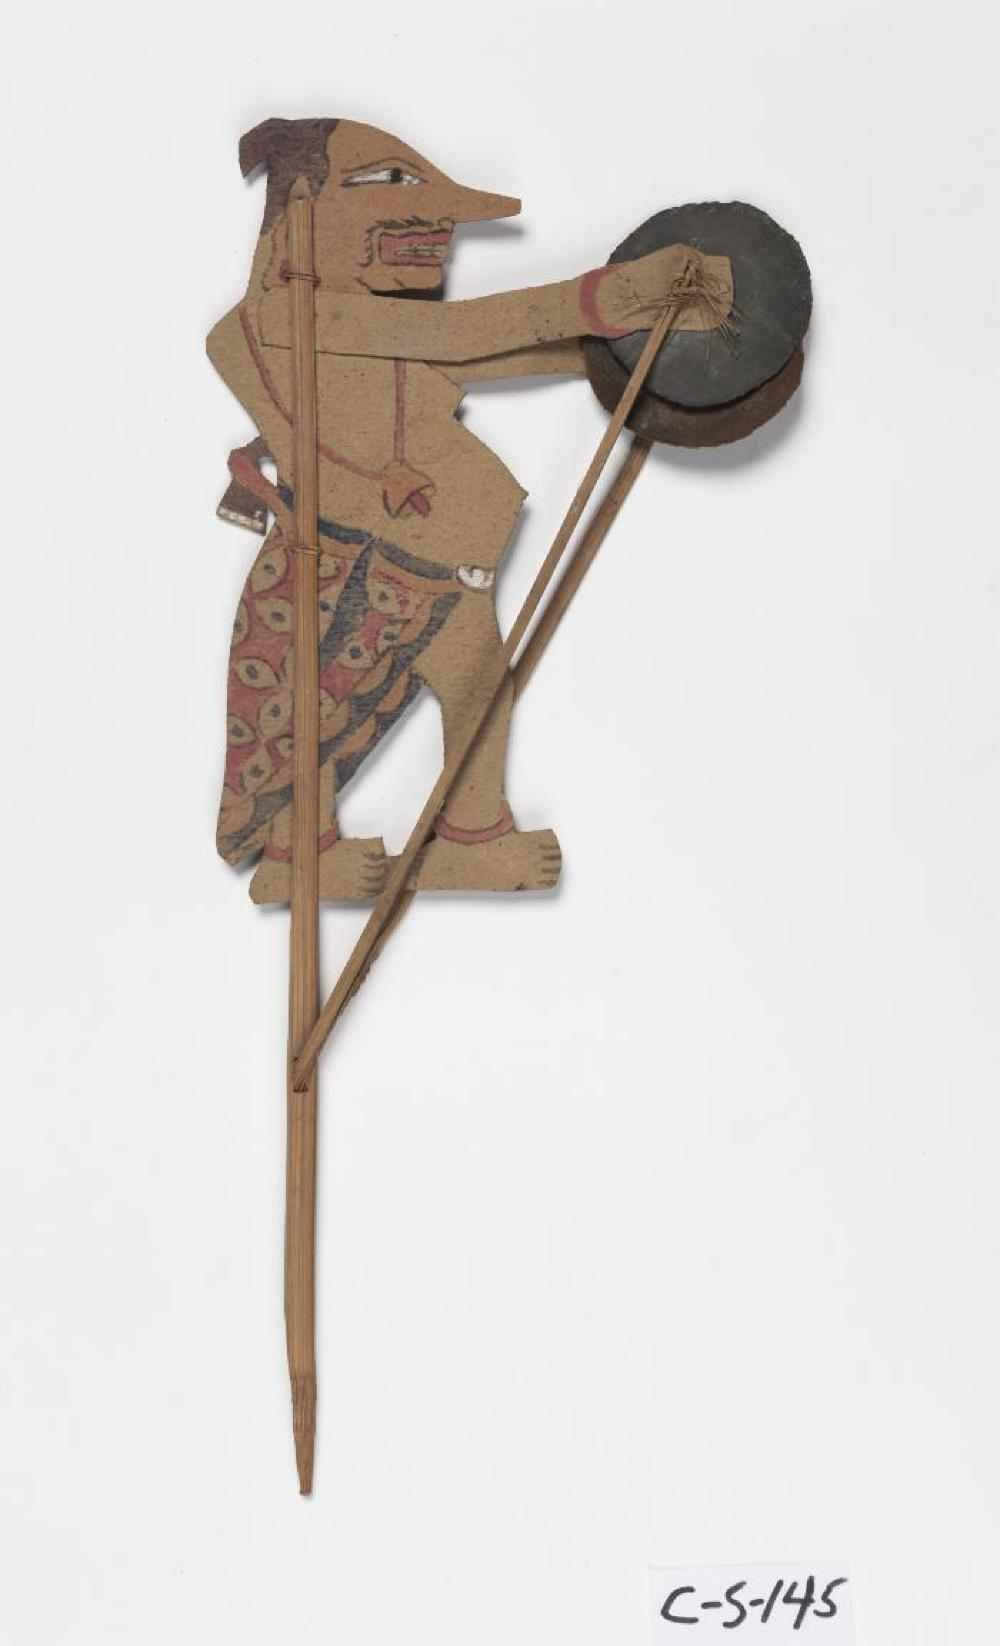 Javanese; Wayang Kulit Shadow Puppet (Petruk); 20th century; Paper, wood, tin; 15 1/8 x 6 5/8 x 1/8 in.; Collection of Isamu Noguchi. (Study Collection; Collectibles, C-S-145)